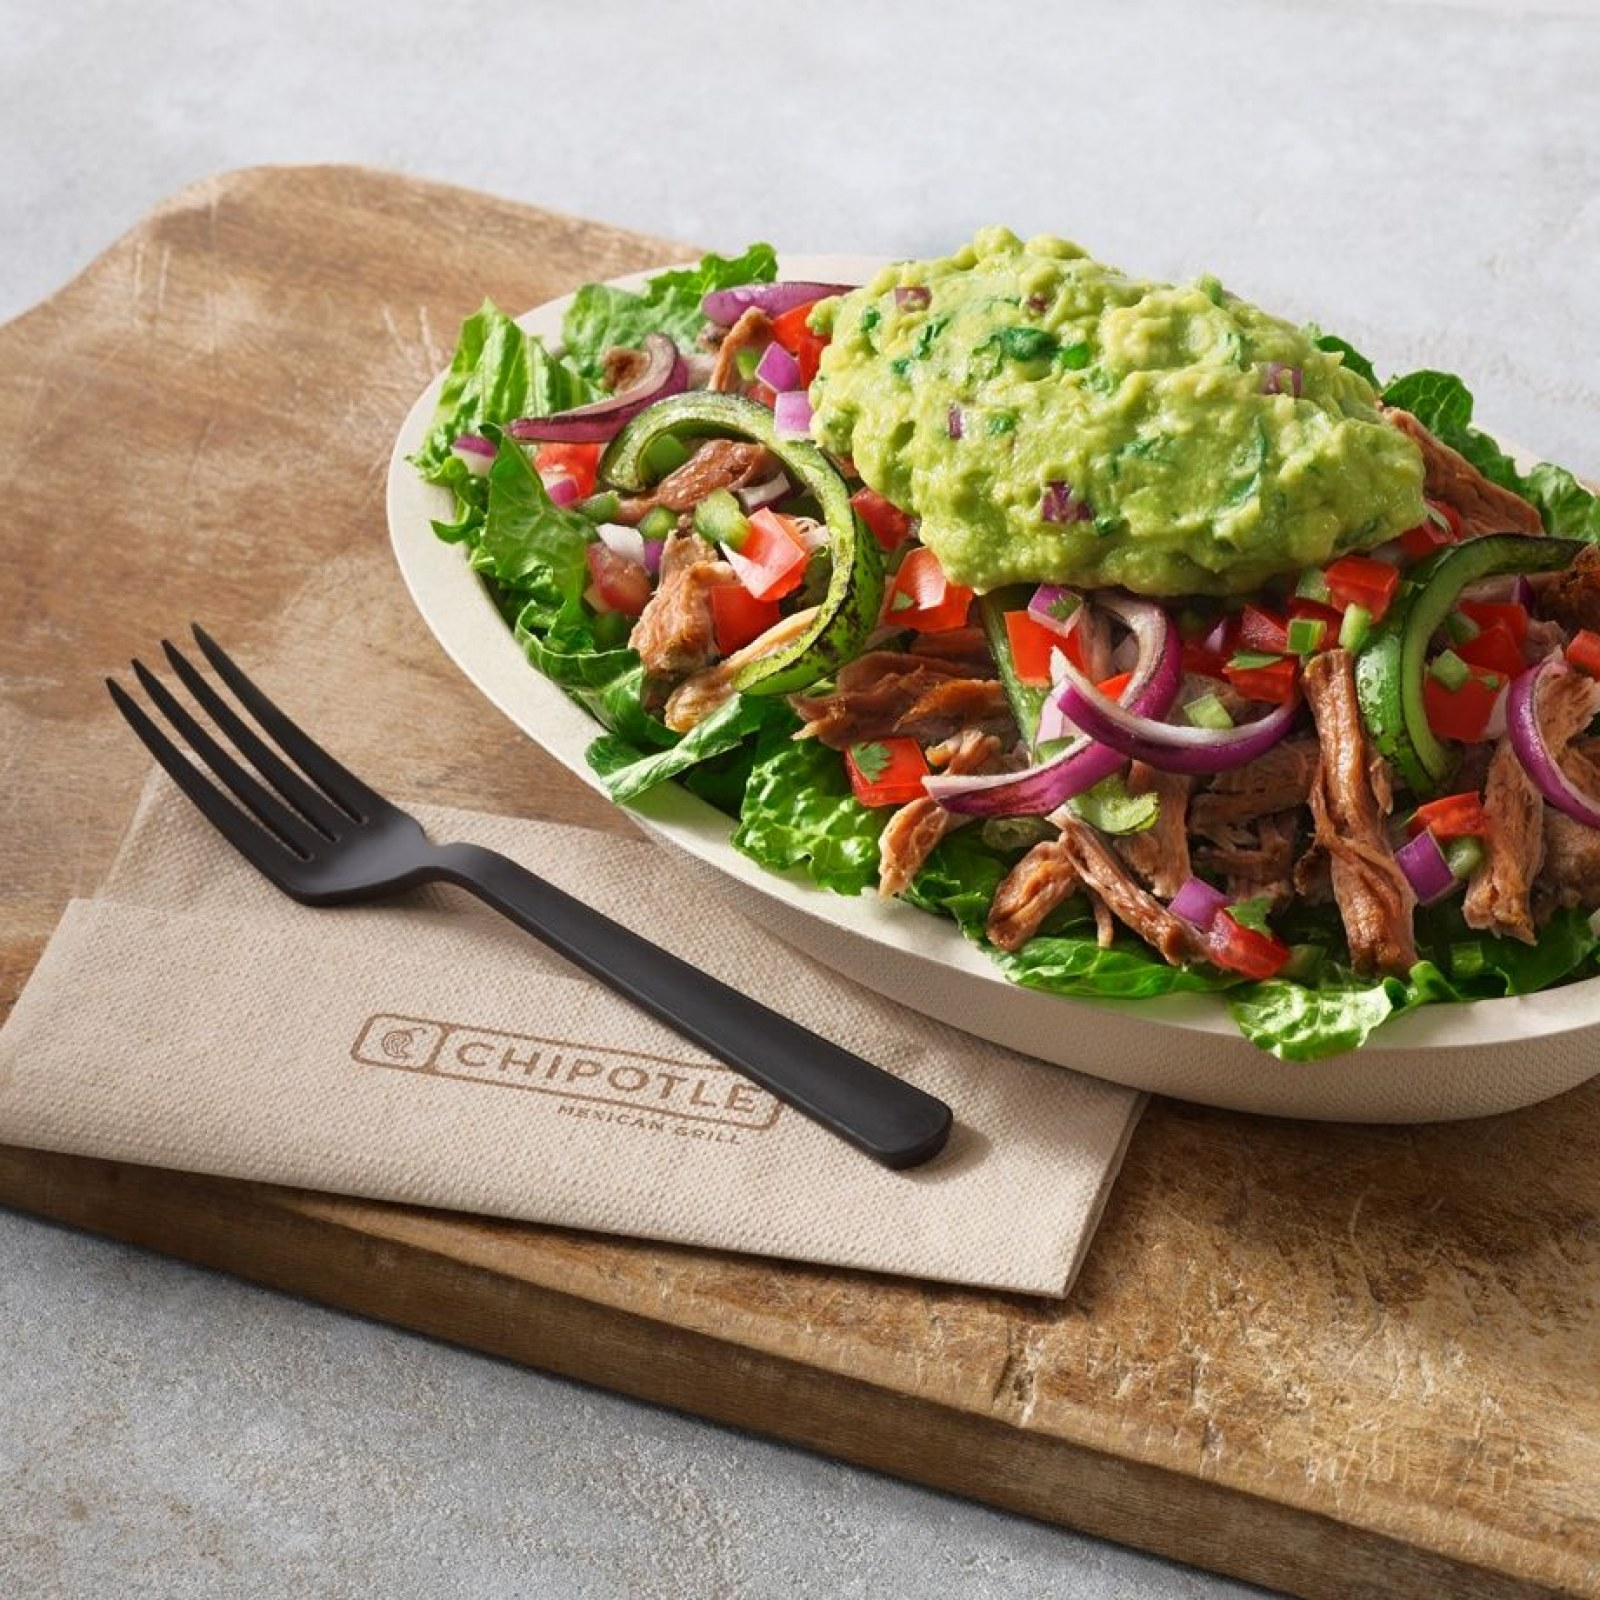 keto diet menu at chipotle